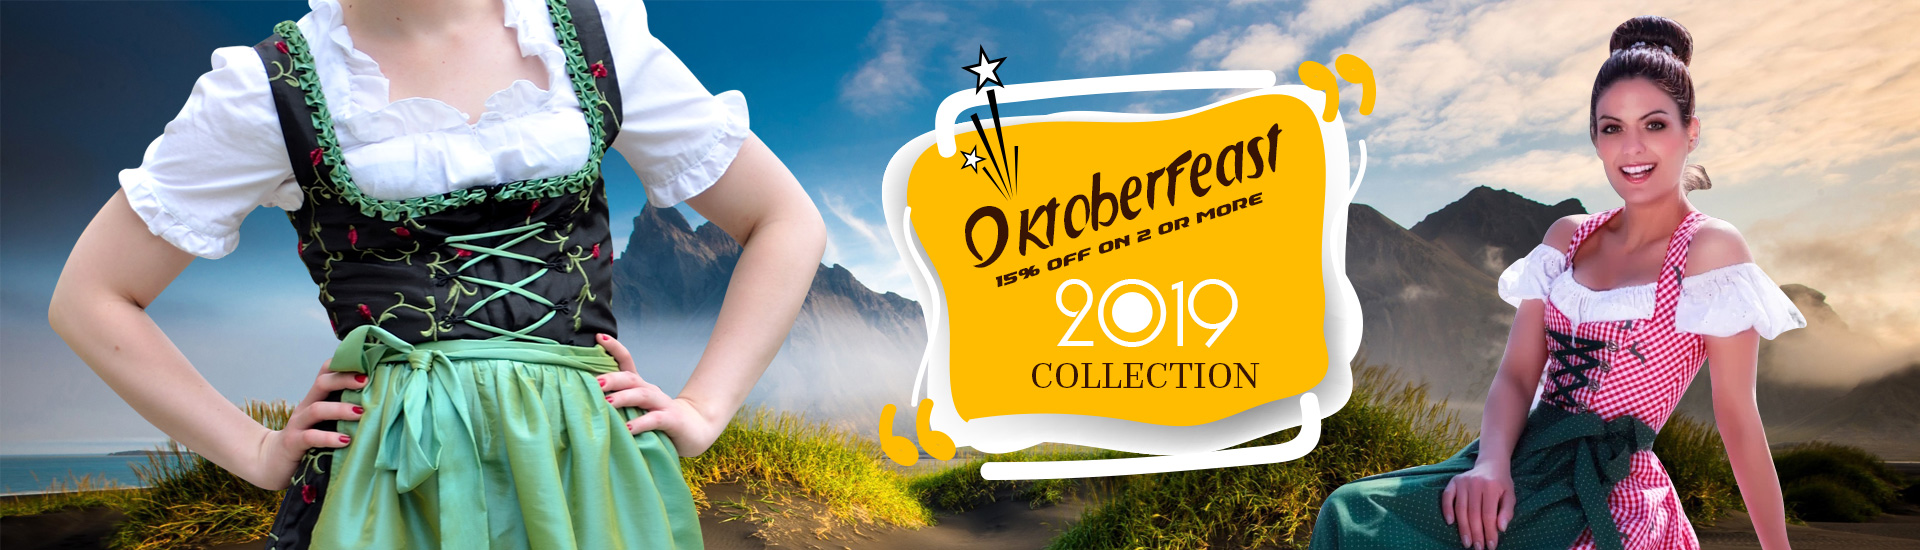 Oktoberfest Collection 2019